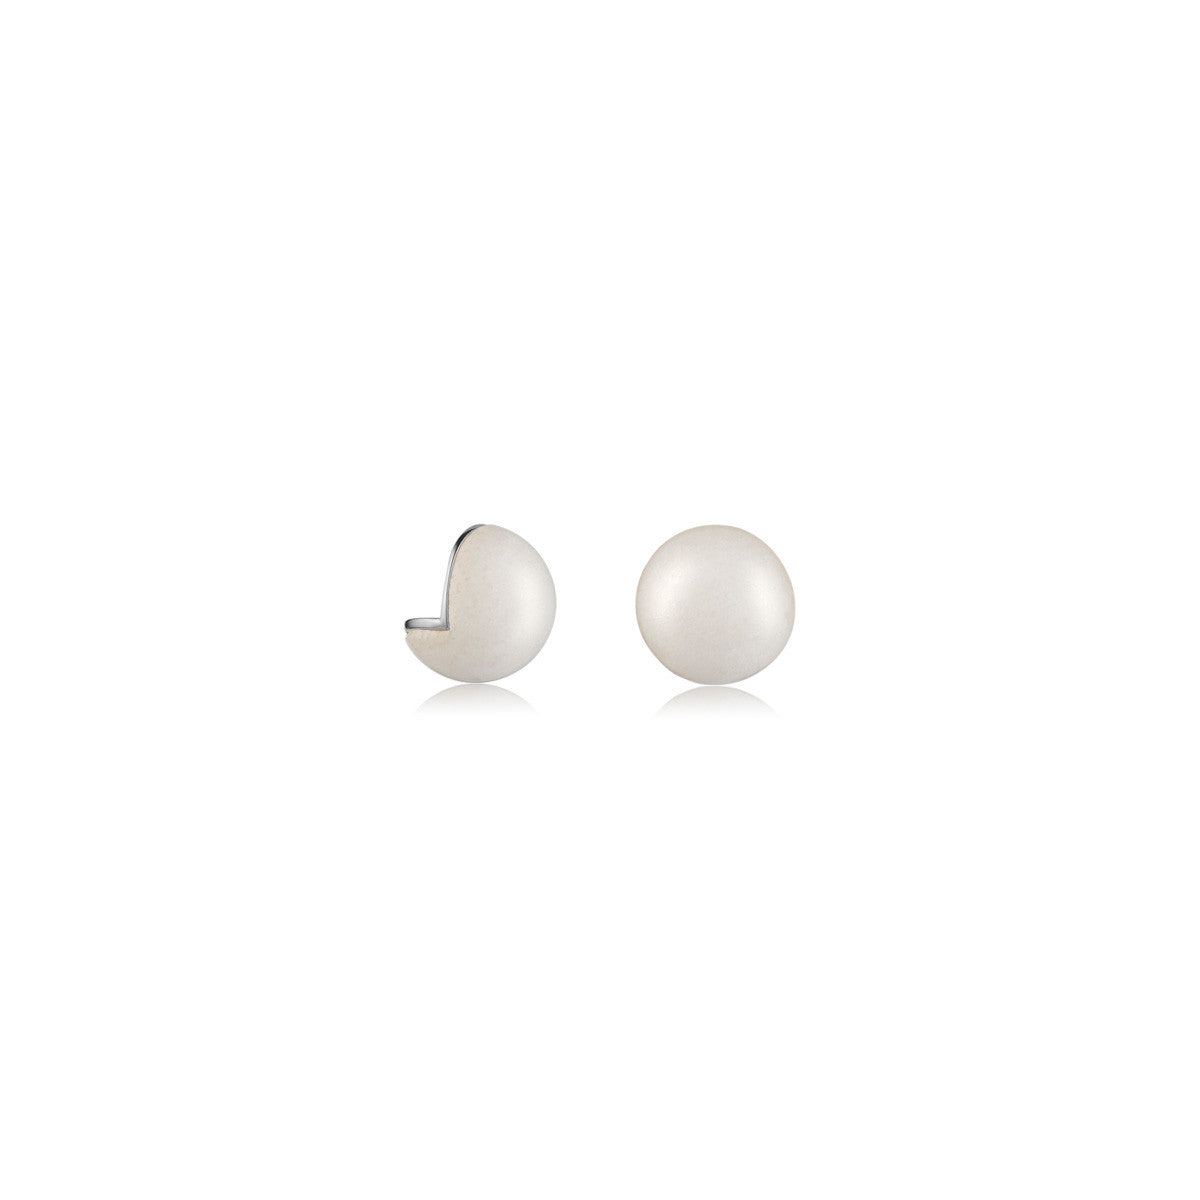 Solid brass, Genuine Rhodium plated Cava stud earrings in white agate – front